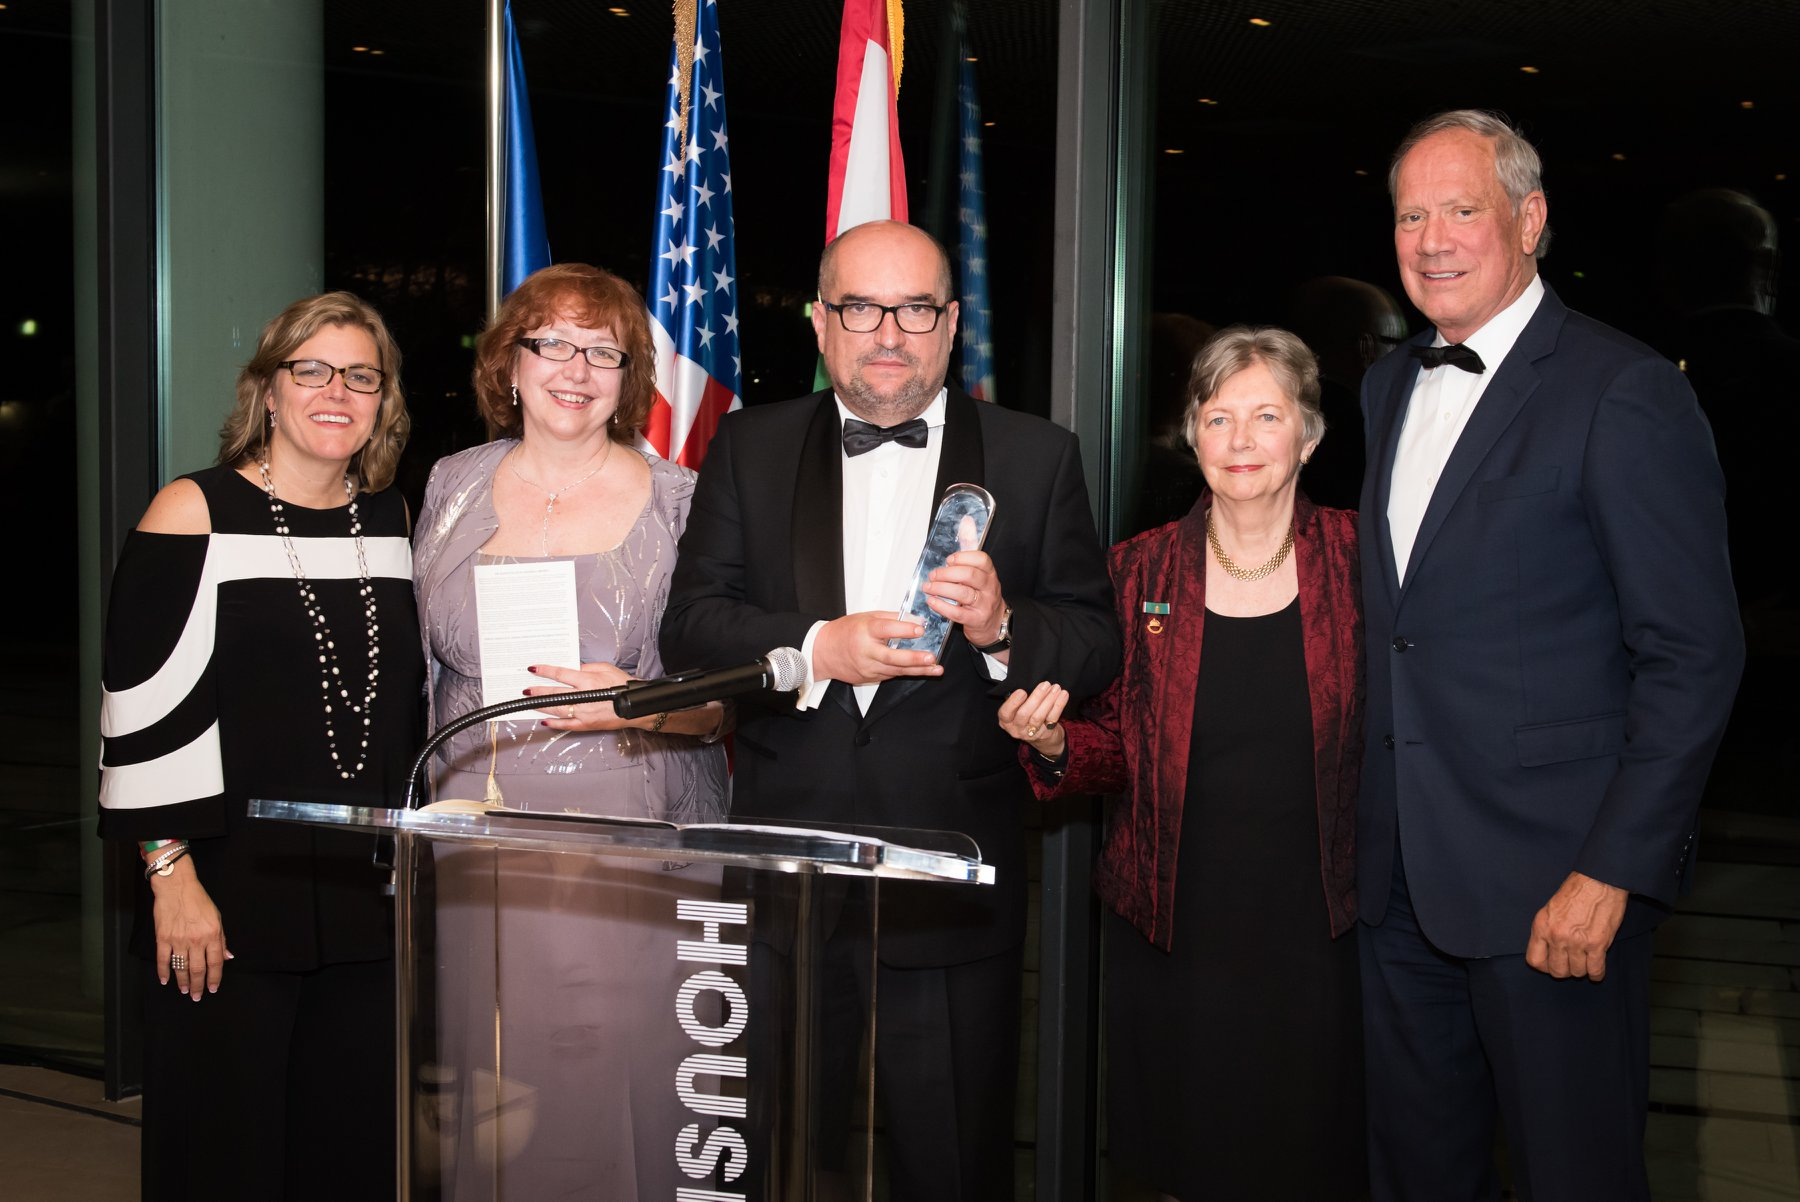 Gala co-chairs Edith K. Lauer and Governor George E. Pataki present award to Dr. Laszlo Brenzovics (accepting the award on behalf of Dr. Ildiko Orosz) with HAC President, Andrea Lauer Rice and Chairman Agnes Virga